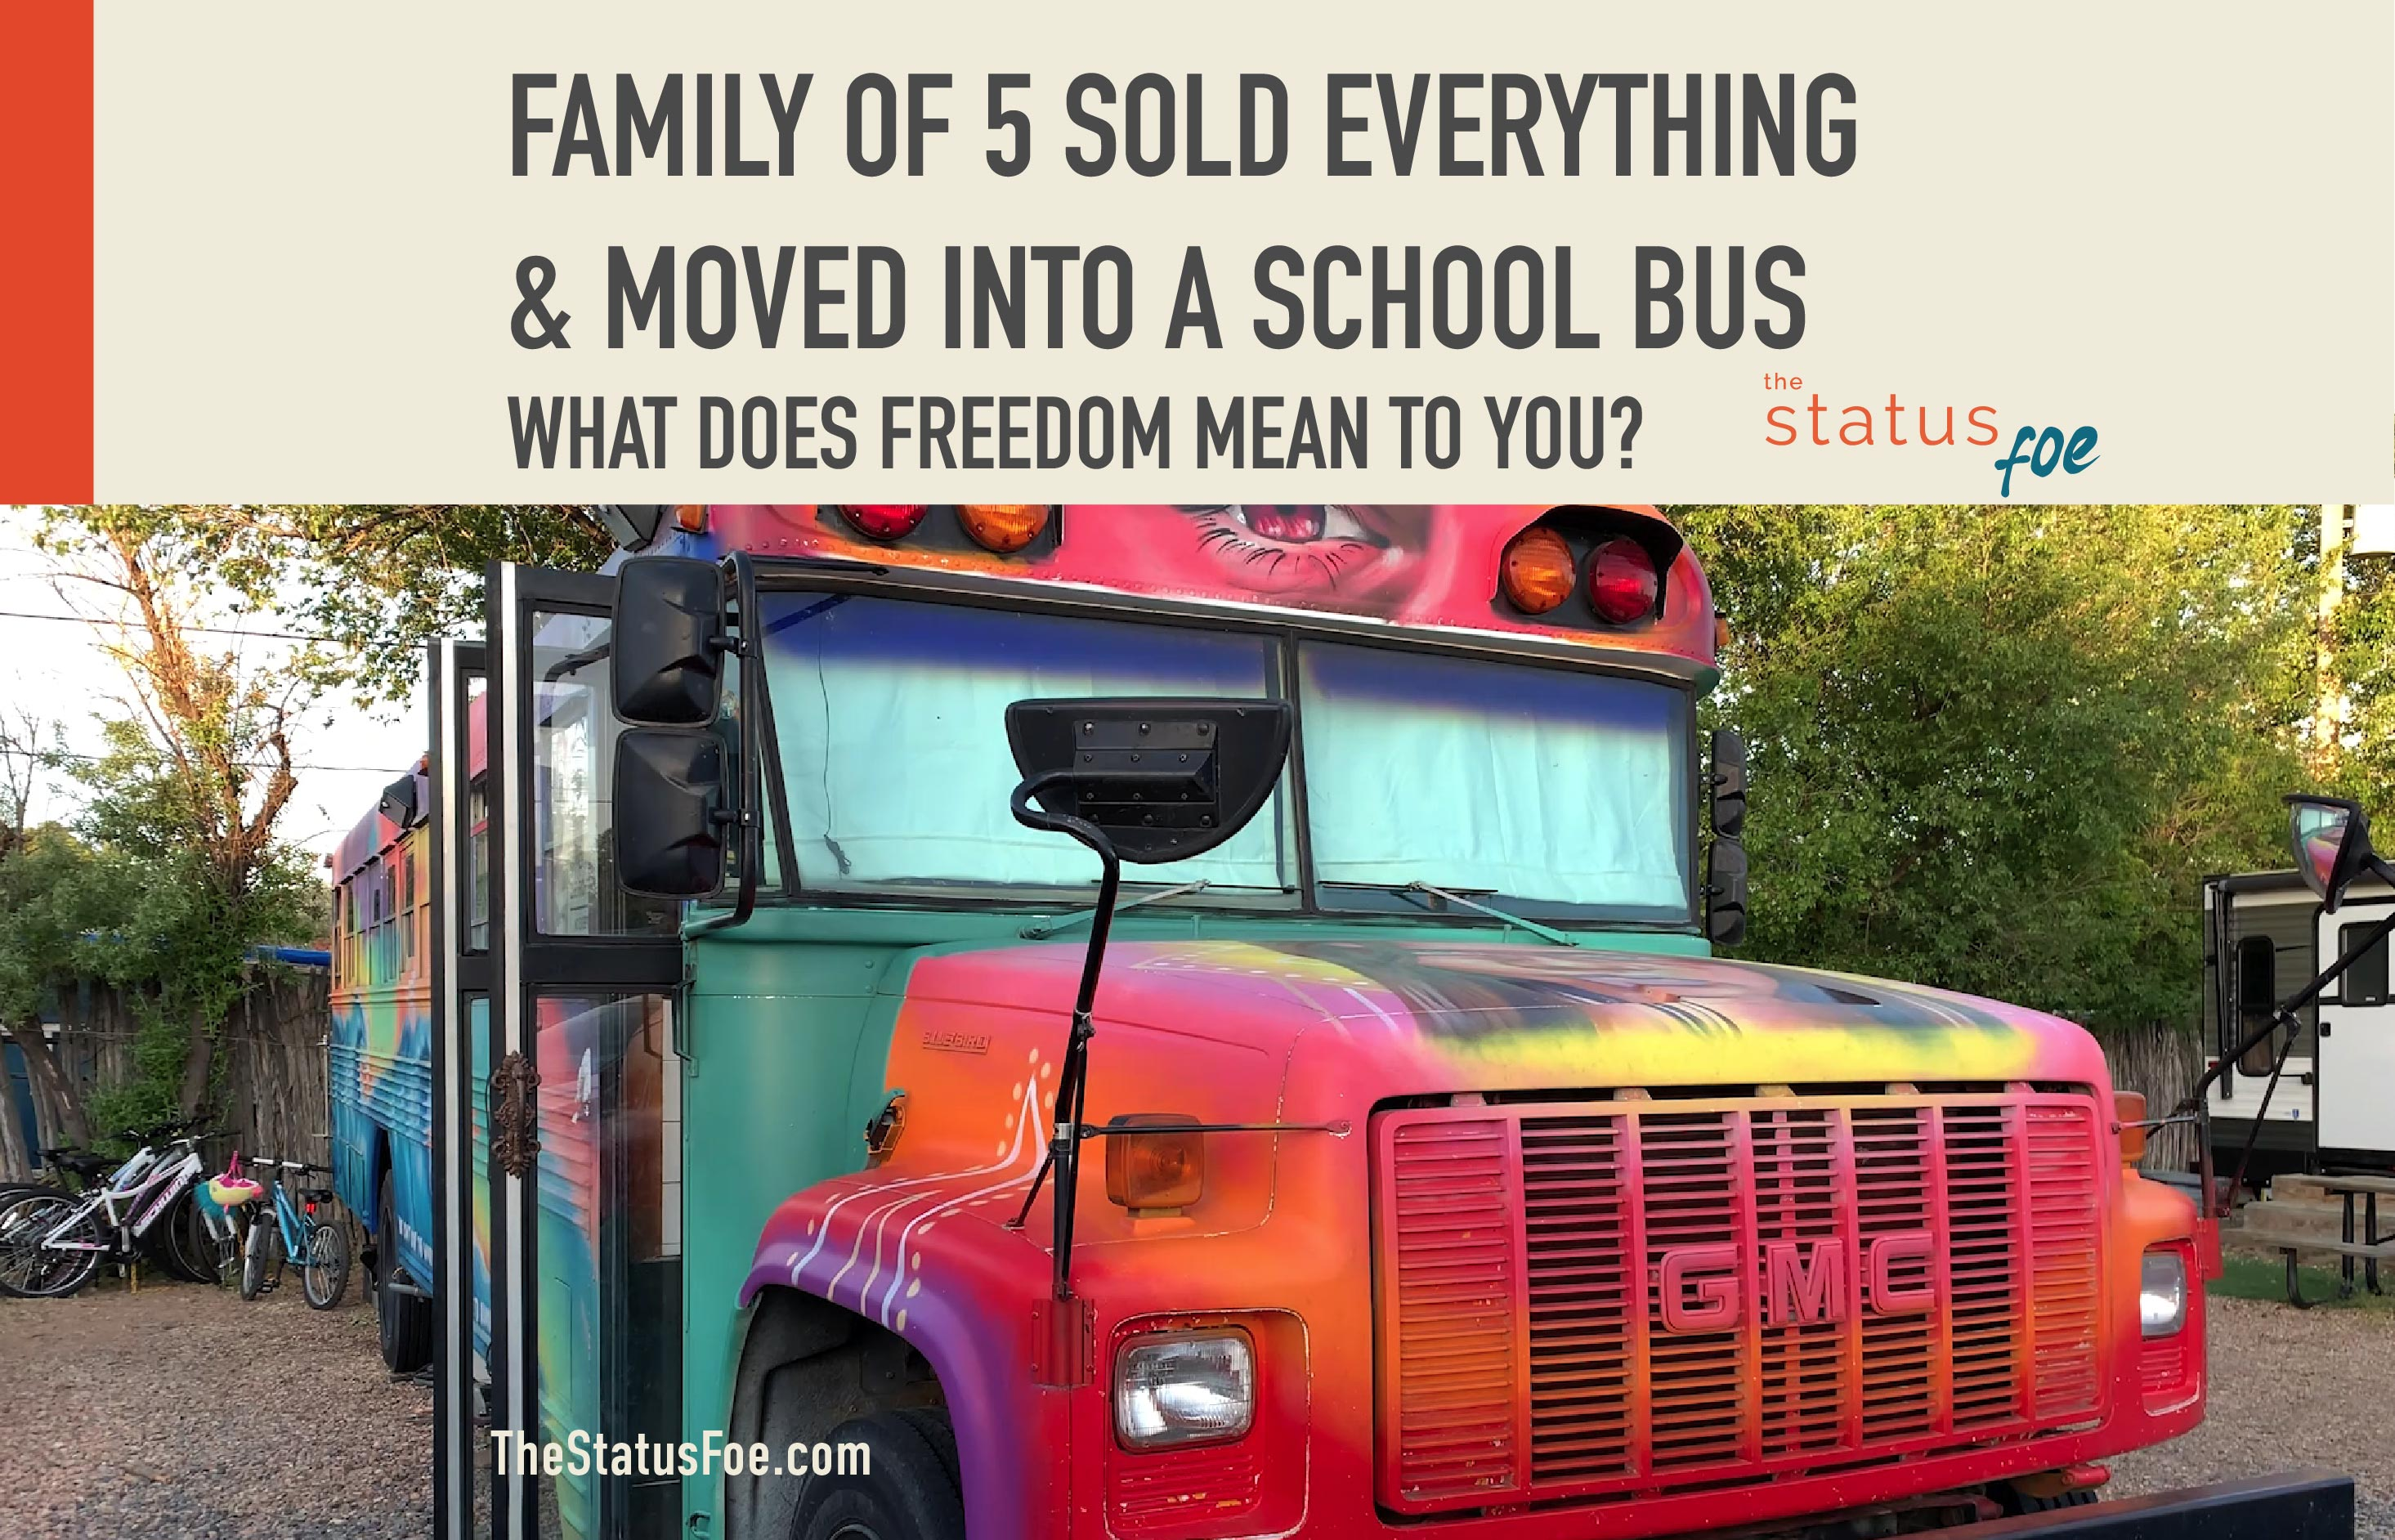 Family of 5 Sold Everything & Moved Into a Skoolie (School Bus) – What does freedom mean to you?